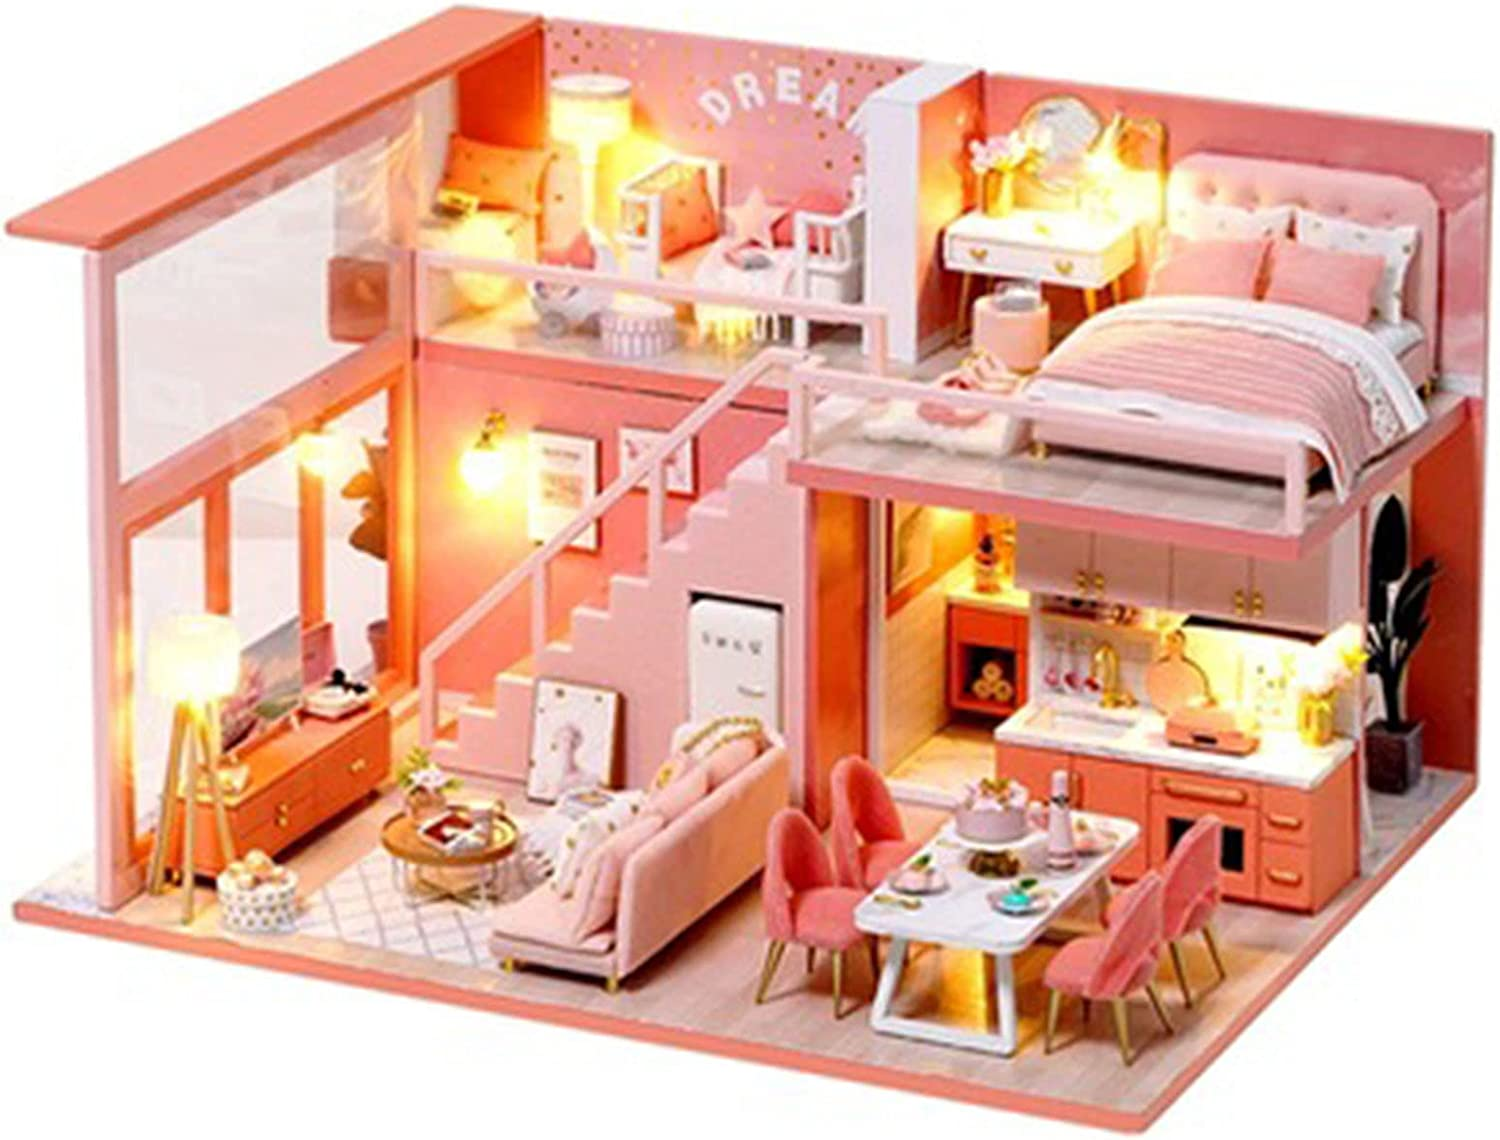 YXLYLL Ranking TOP11 Super beauty product restock quality top House Handmade DIY Assembled Sweet Angel Model Attic Wood